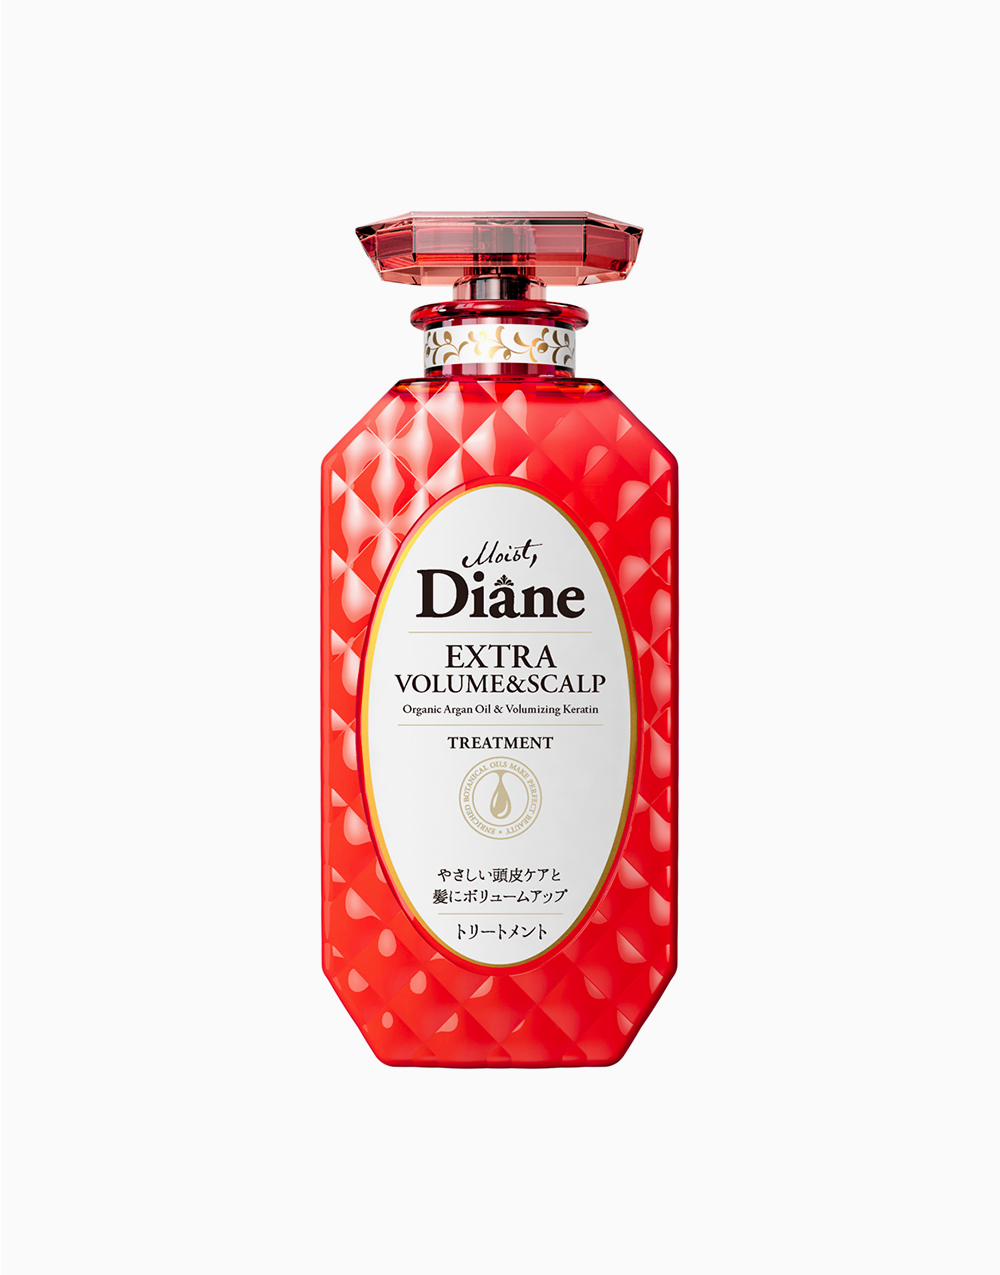 Extra Volume and Scalp Hair Treatment by Moist Diane